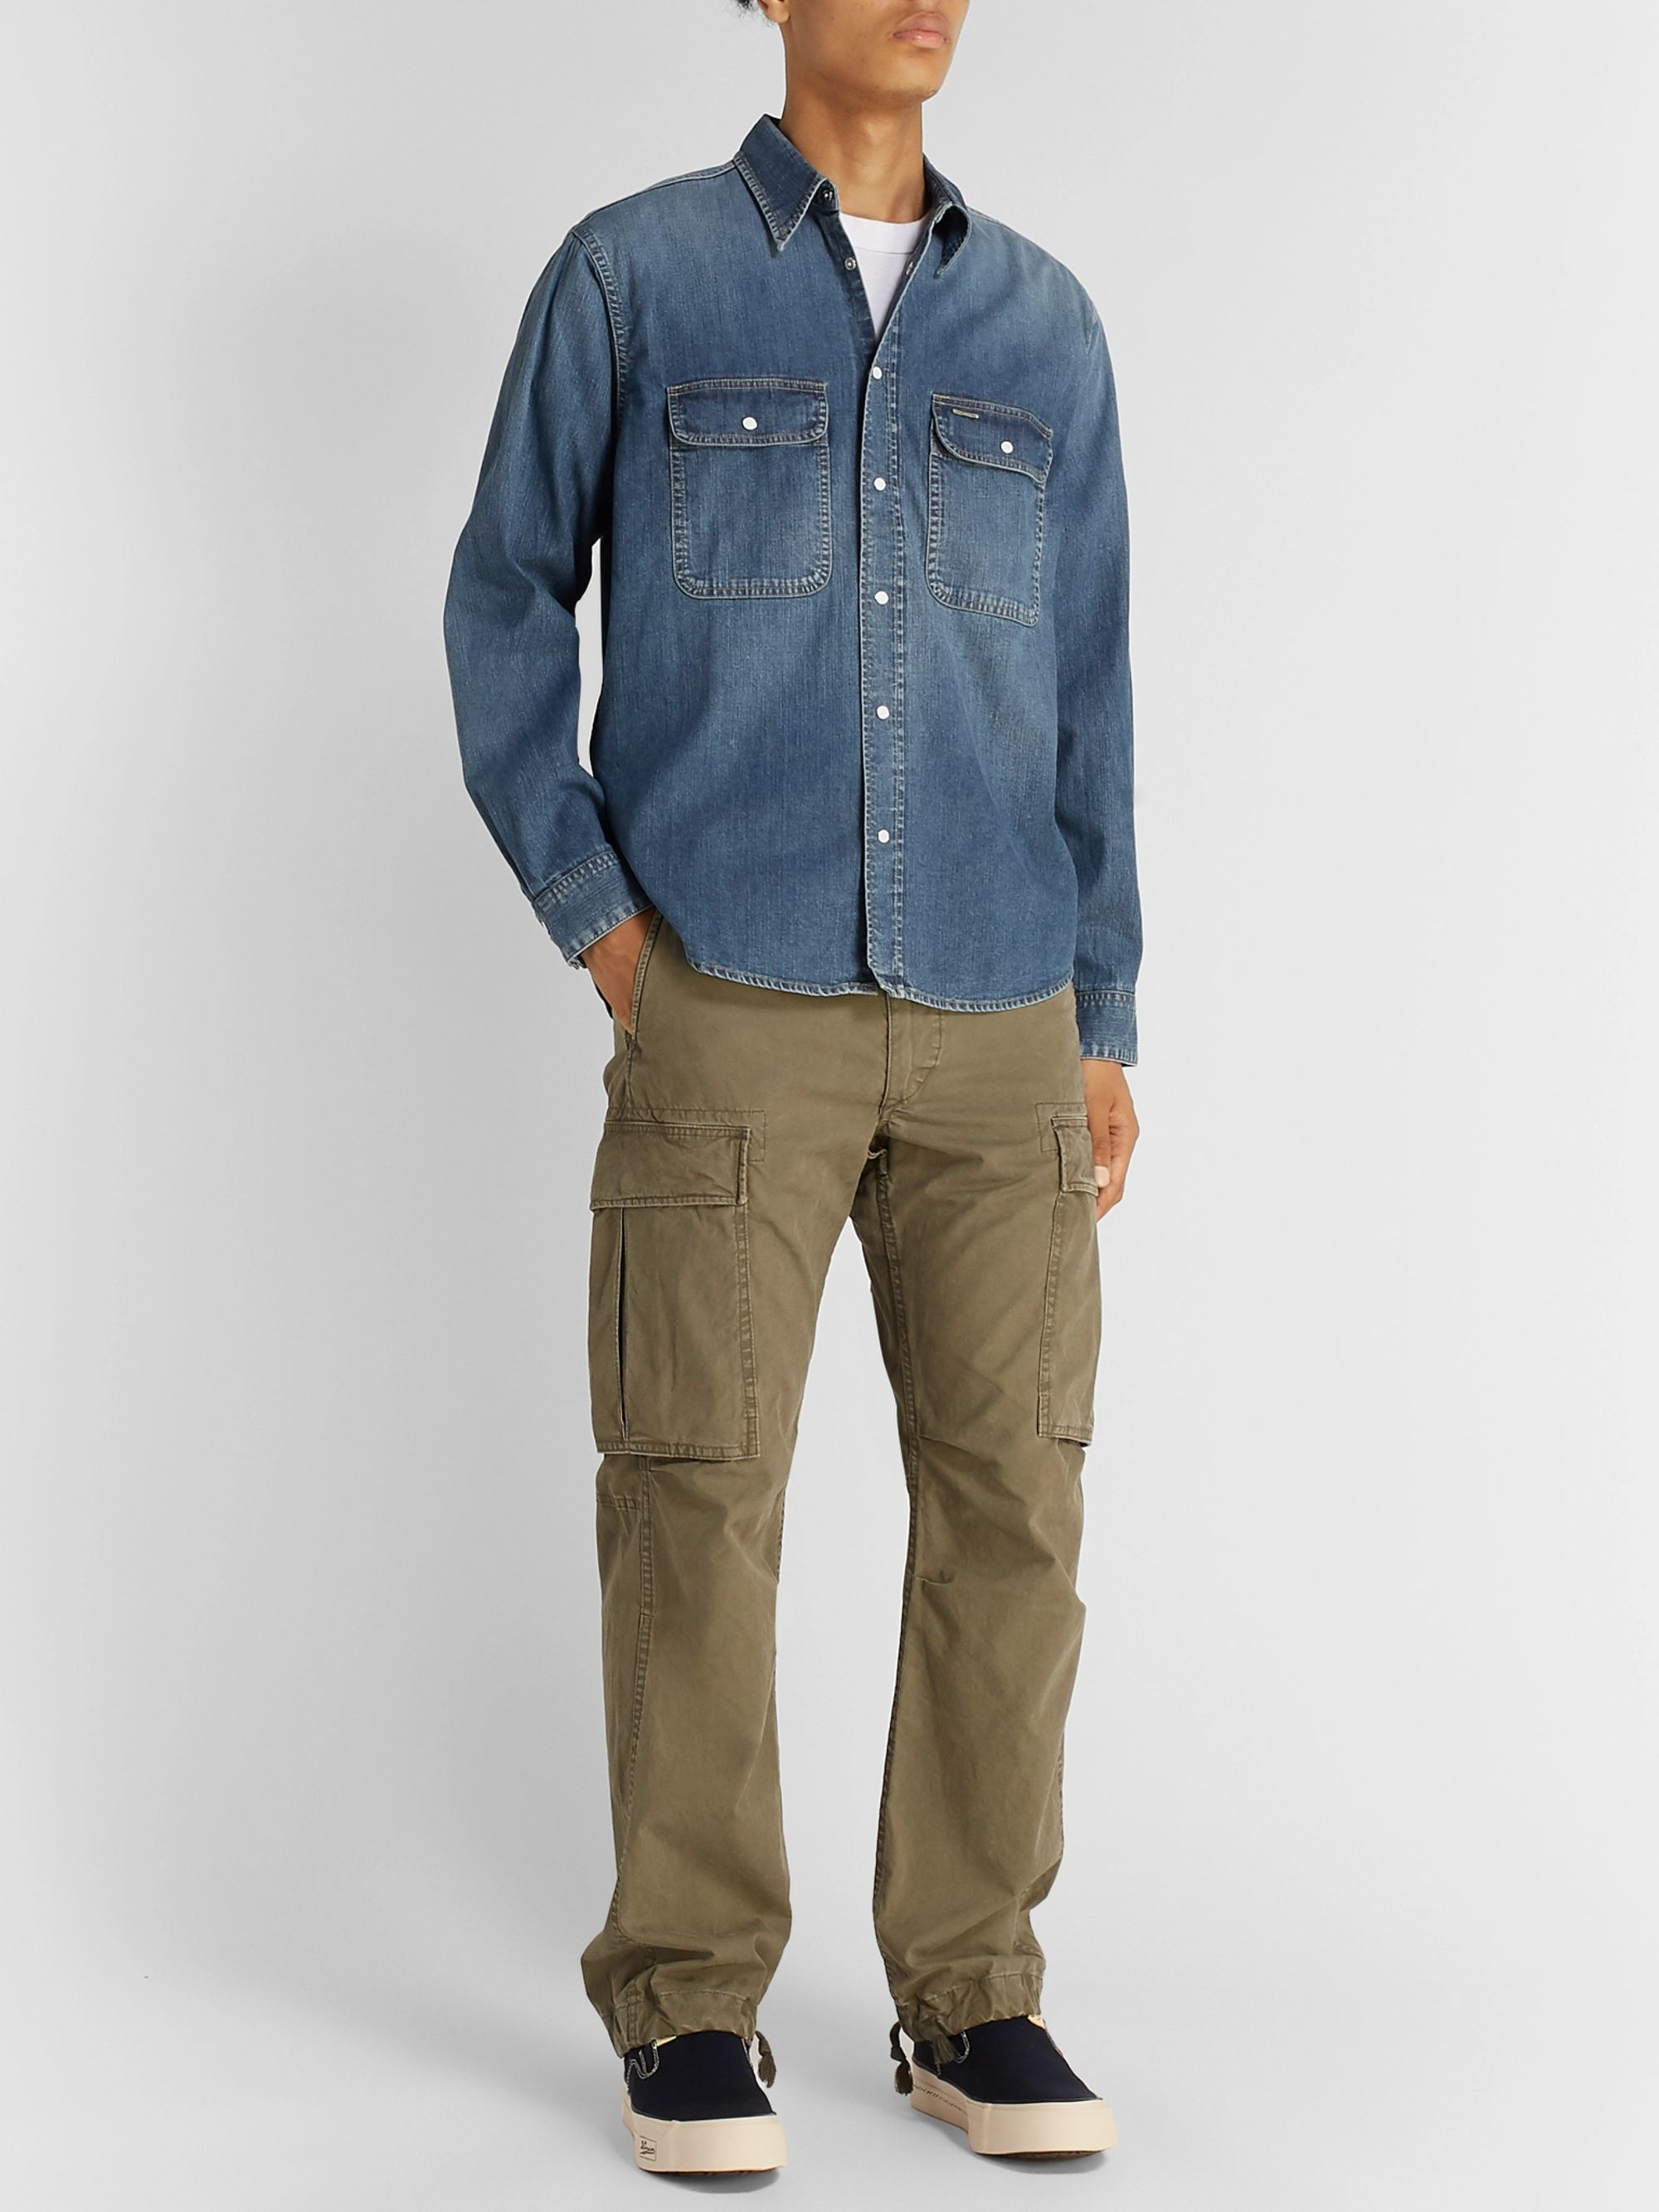 visvim Denim Western Shirt